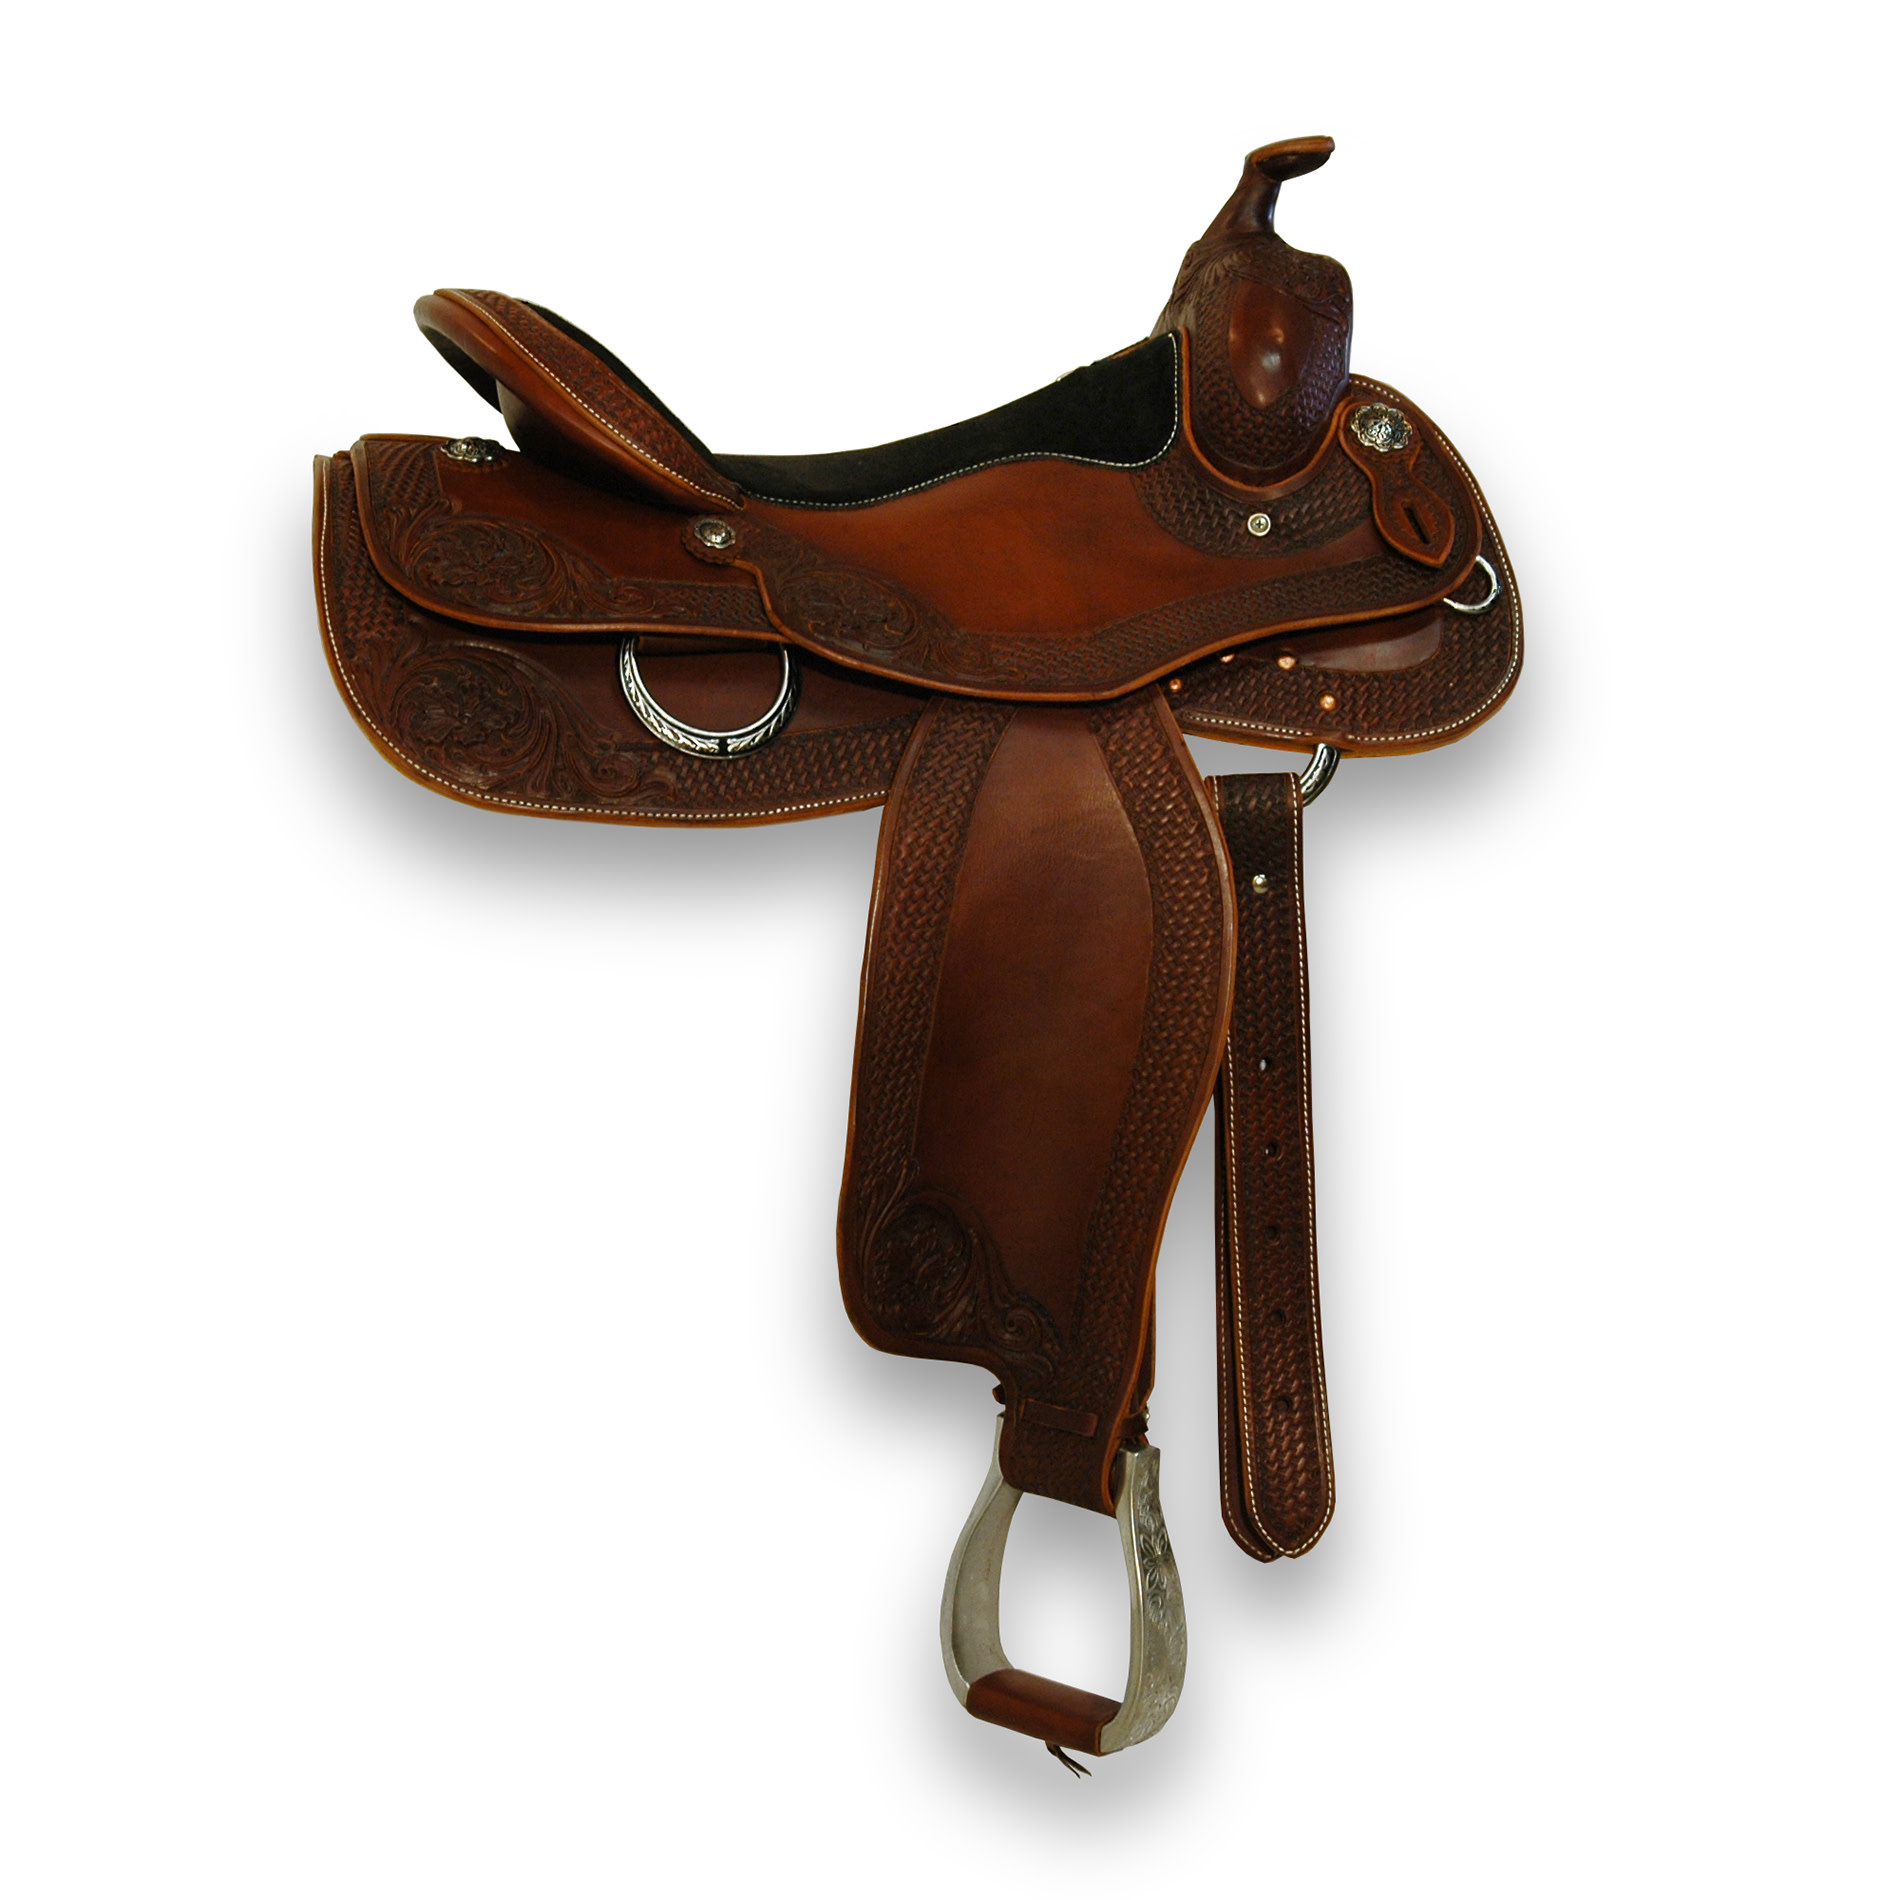 Ranchman Ranchman  example saddle 4